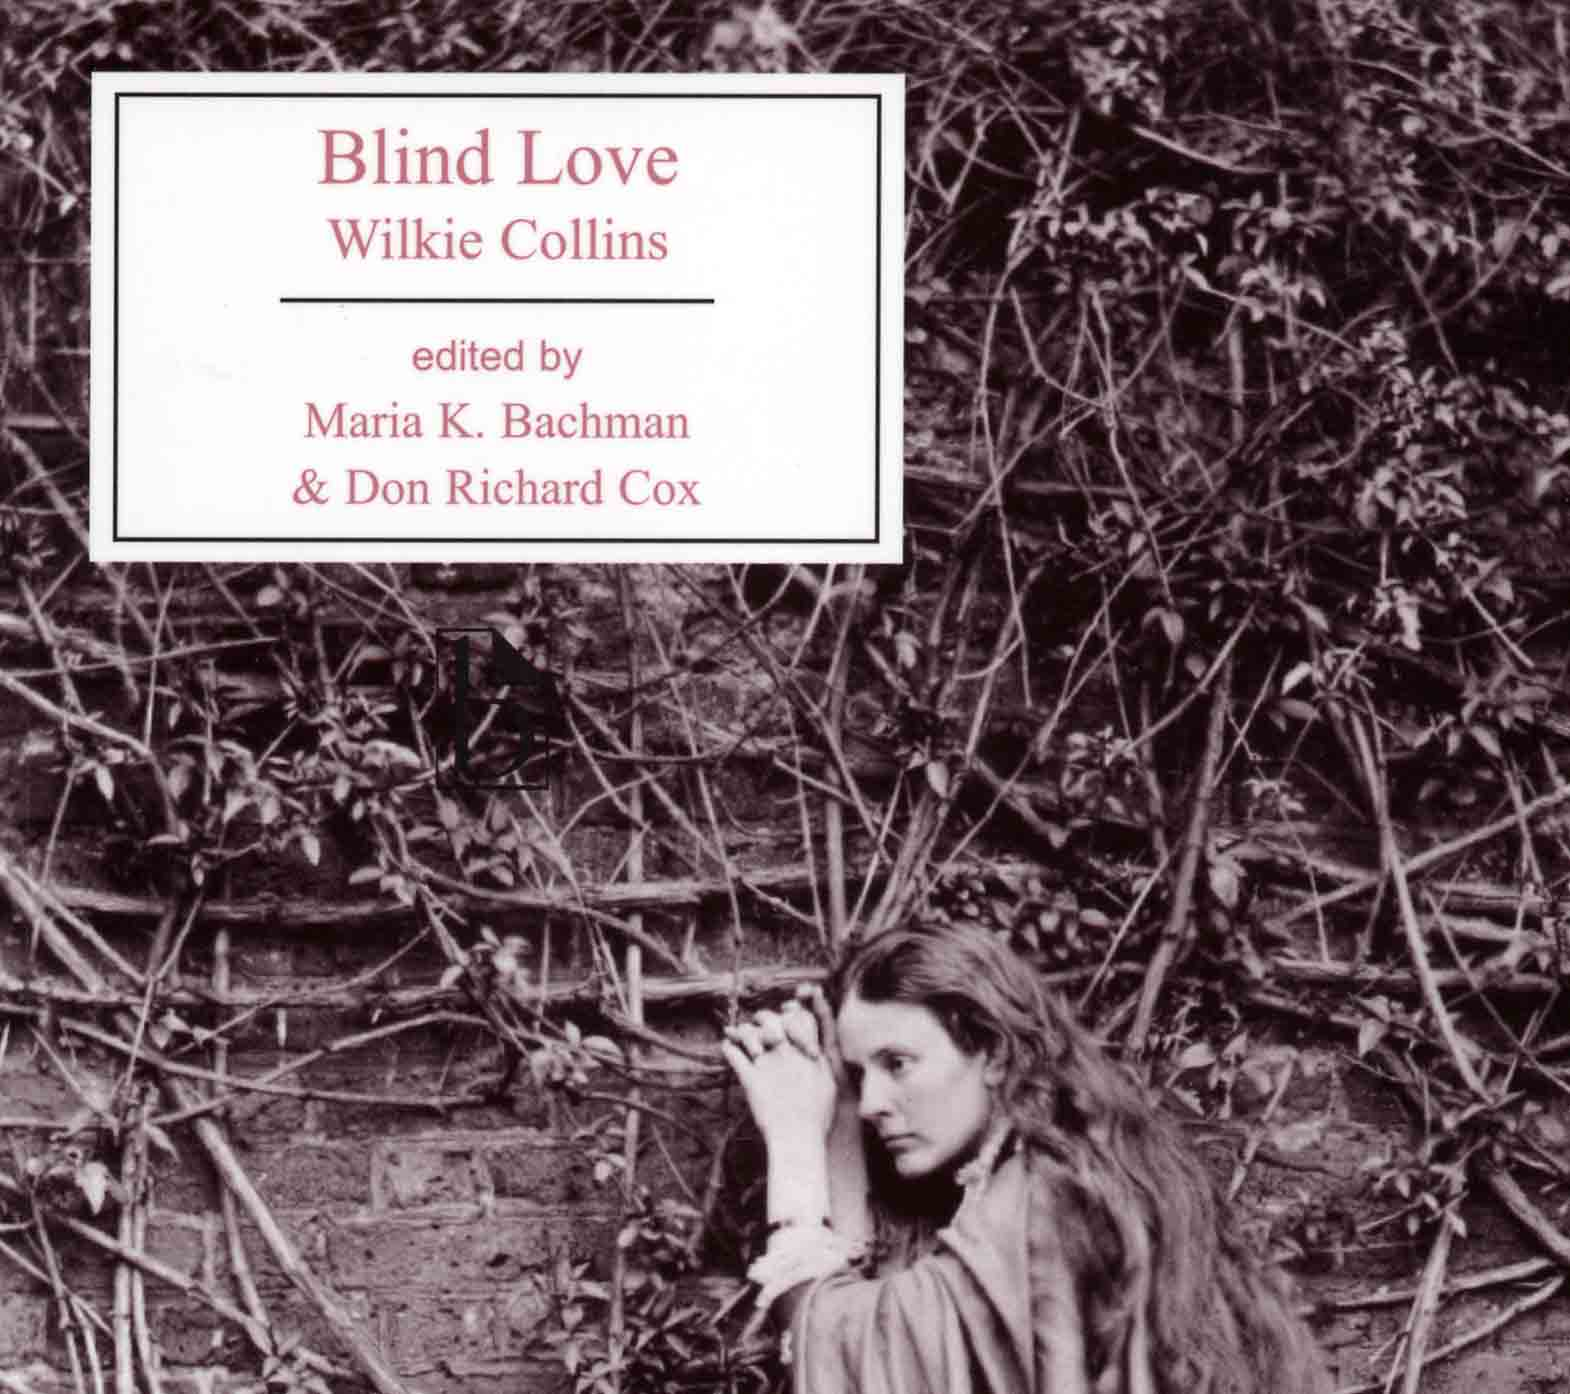 Blind Love, Wilkie Collins - Broadview Press - Bachman and Cox